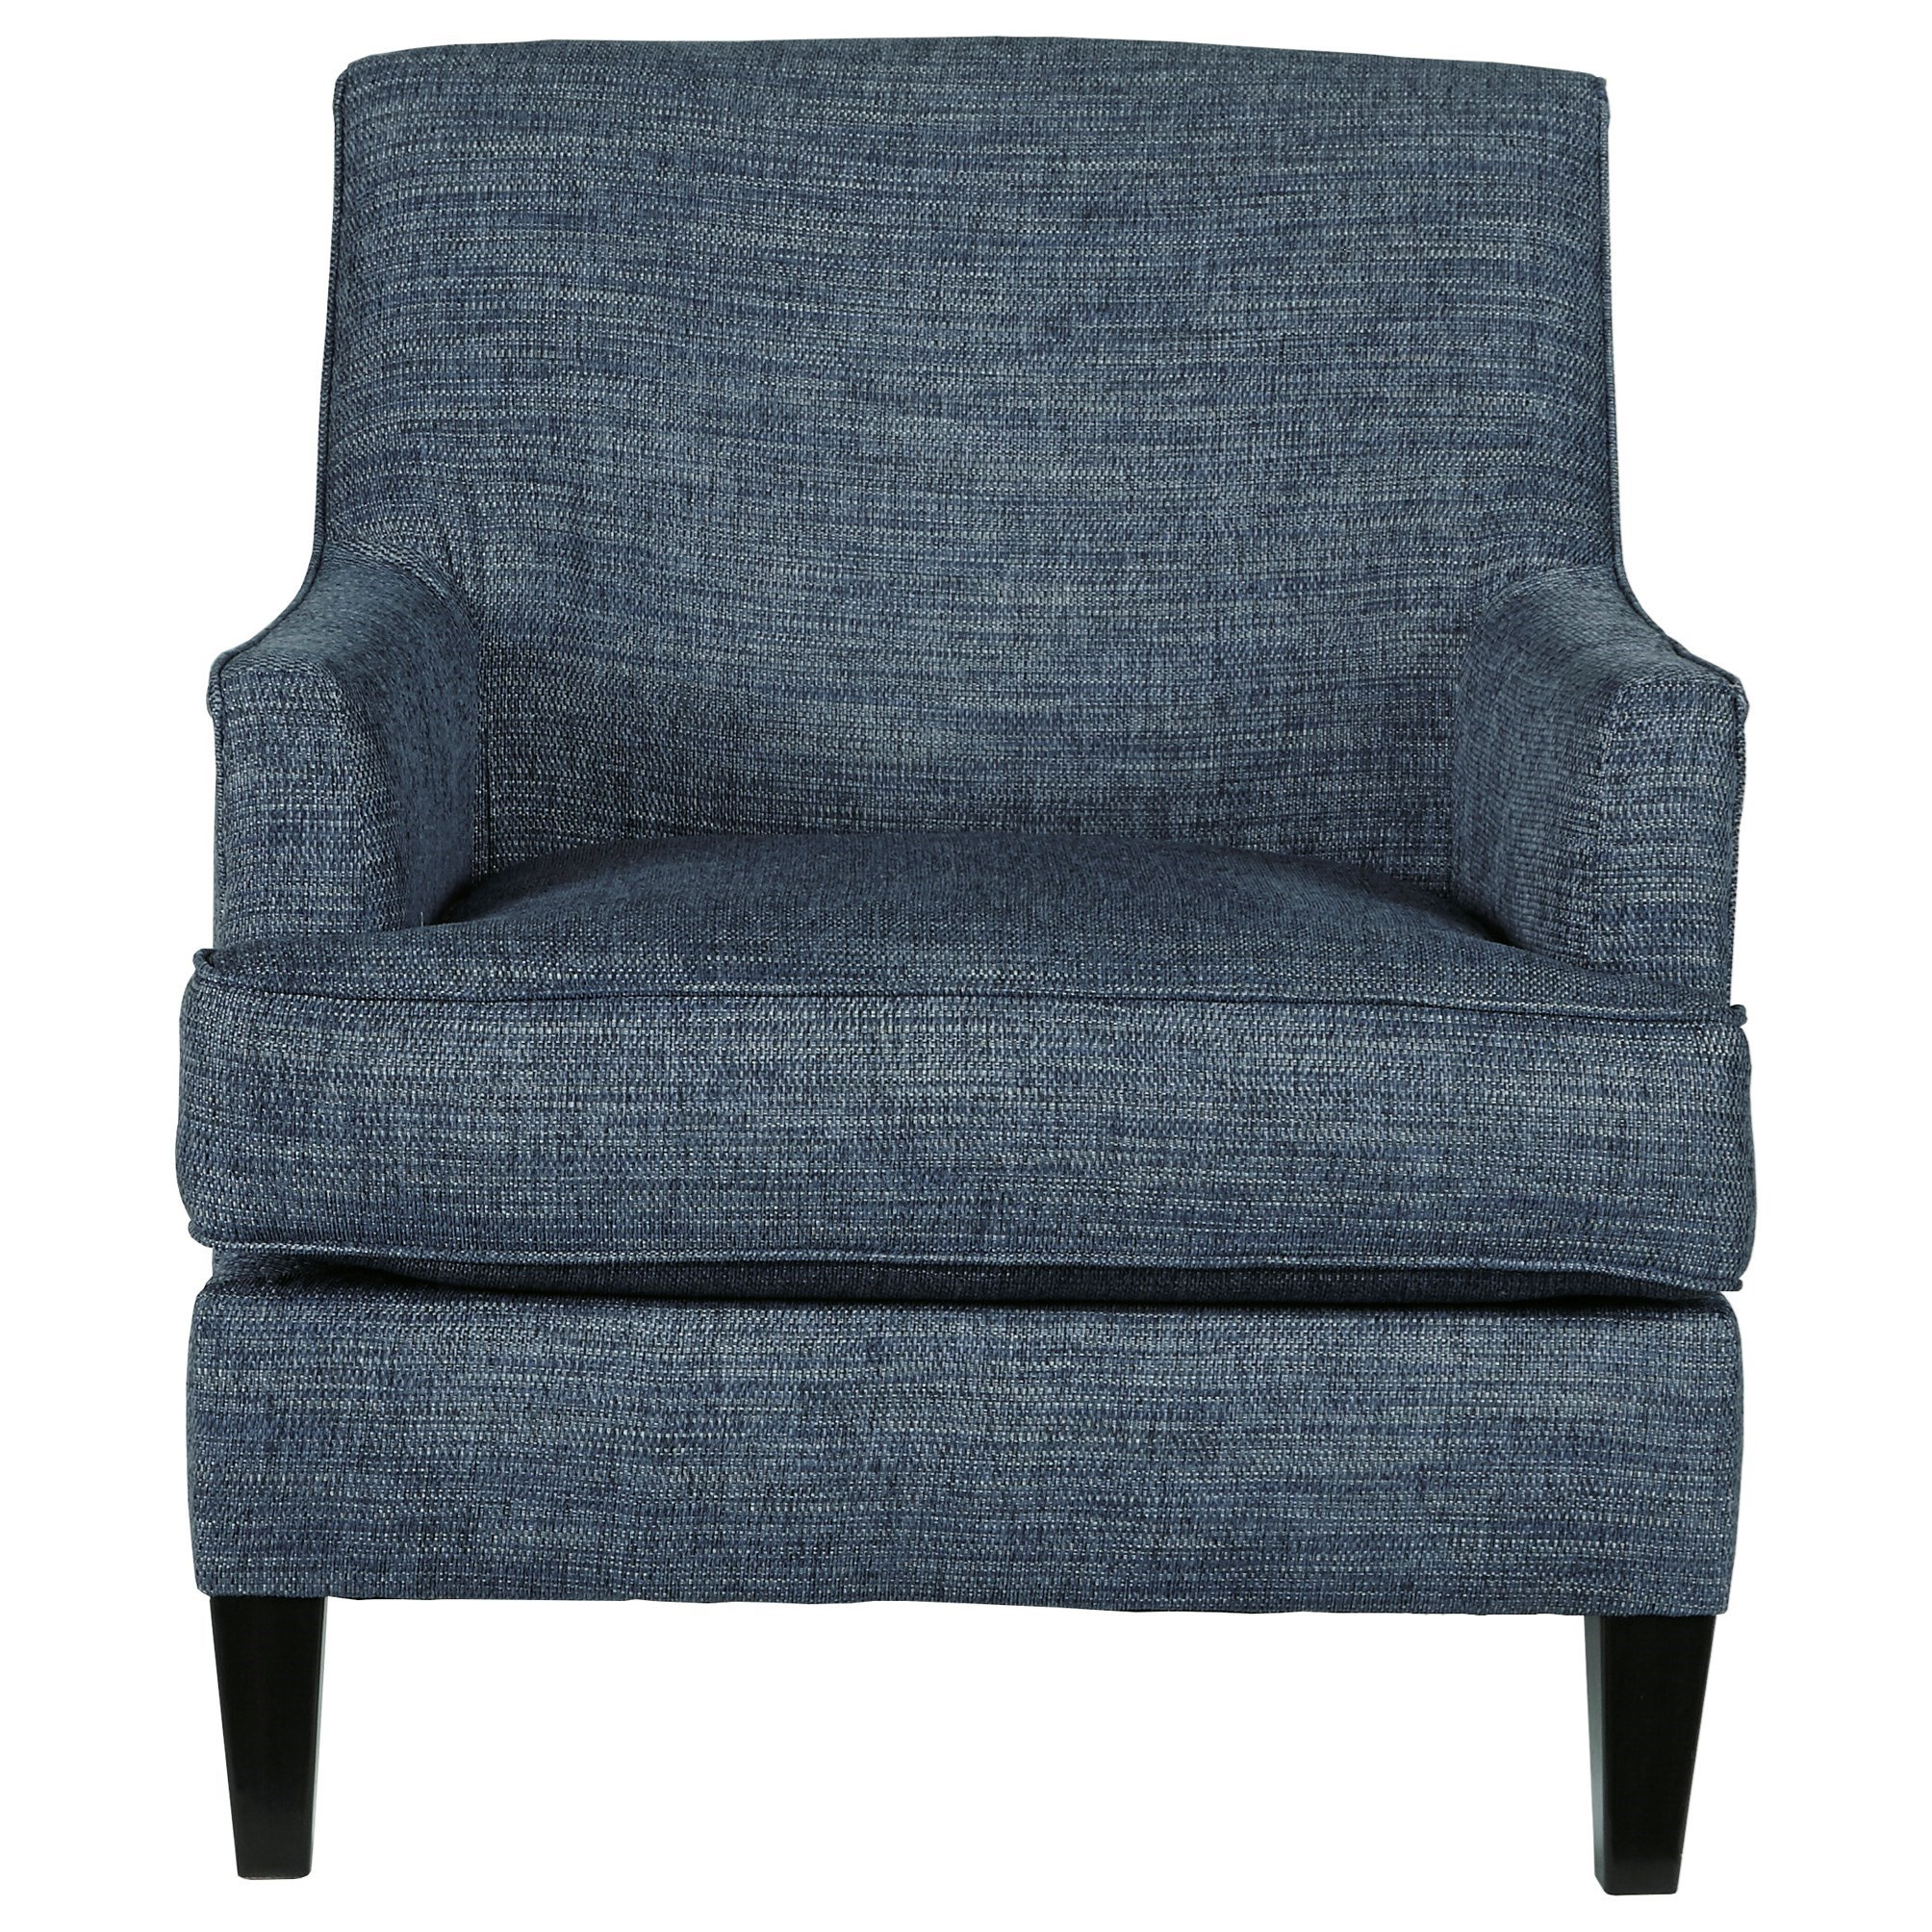 Tenino Accent Chair by Ashley (Signature Design) at Johnny Janosik